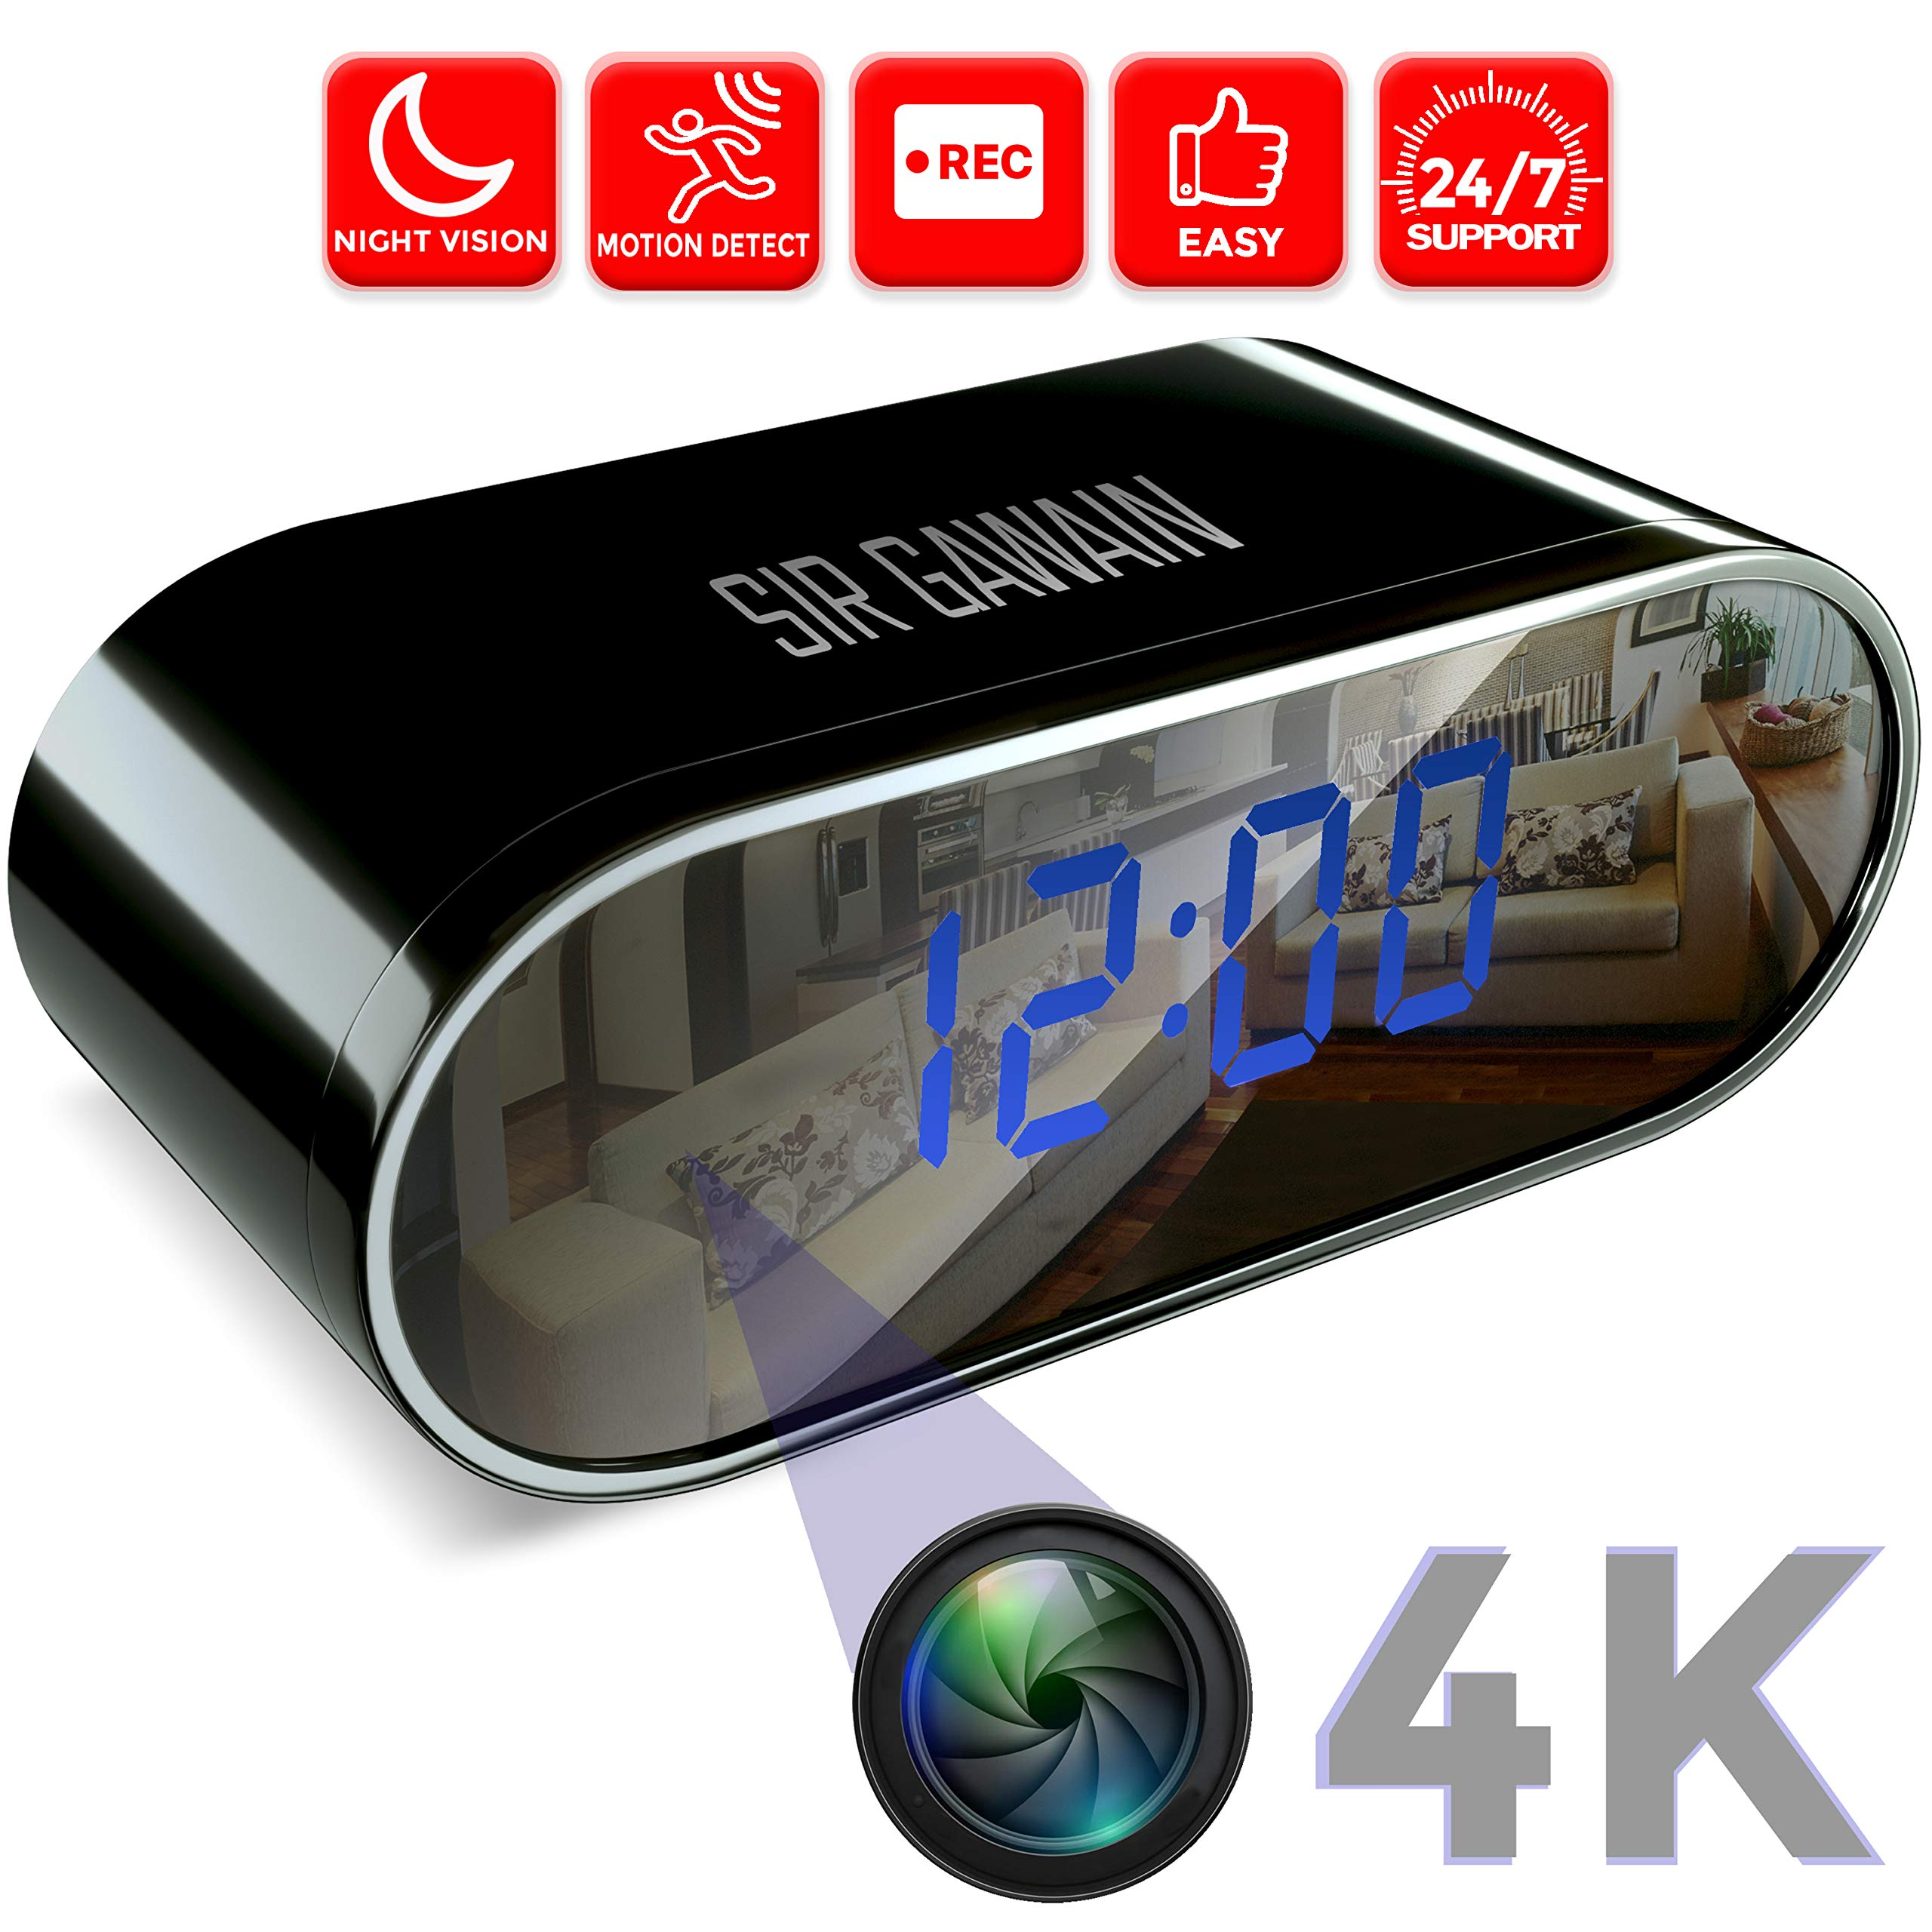 SIRGAWAIN Hidden Spy Camera Clock | 4K Video | Nanny Cam | Home Surveillance | Small Personal Security | Night Vision and Motion Detection | Wide 150° Viewing Angle by SIRGAWAIN